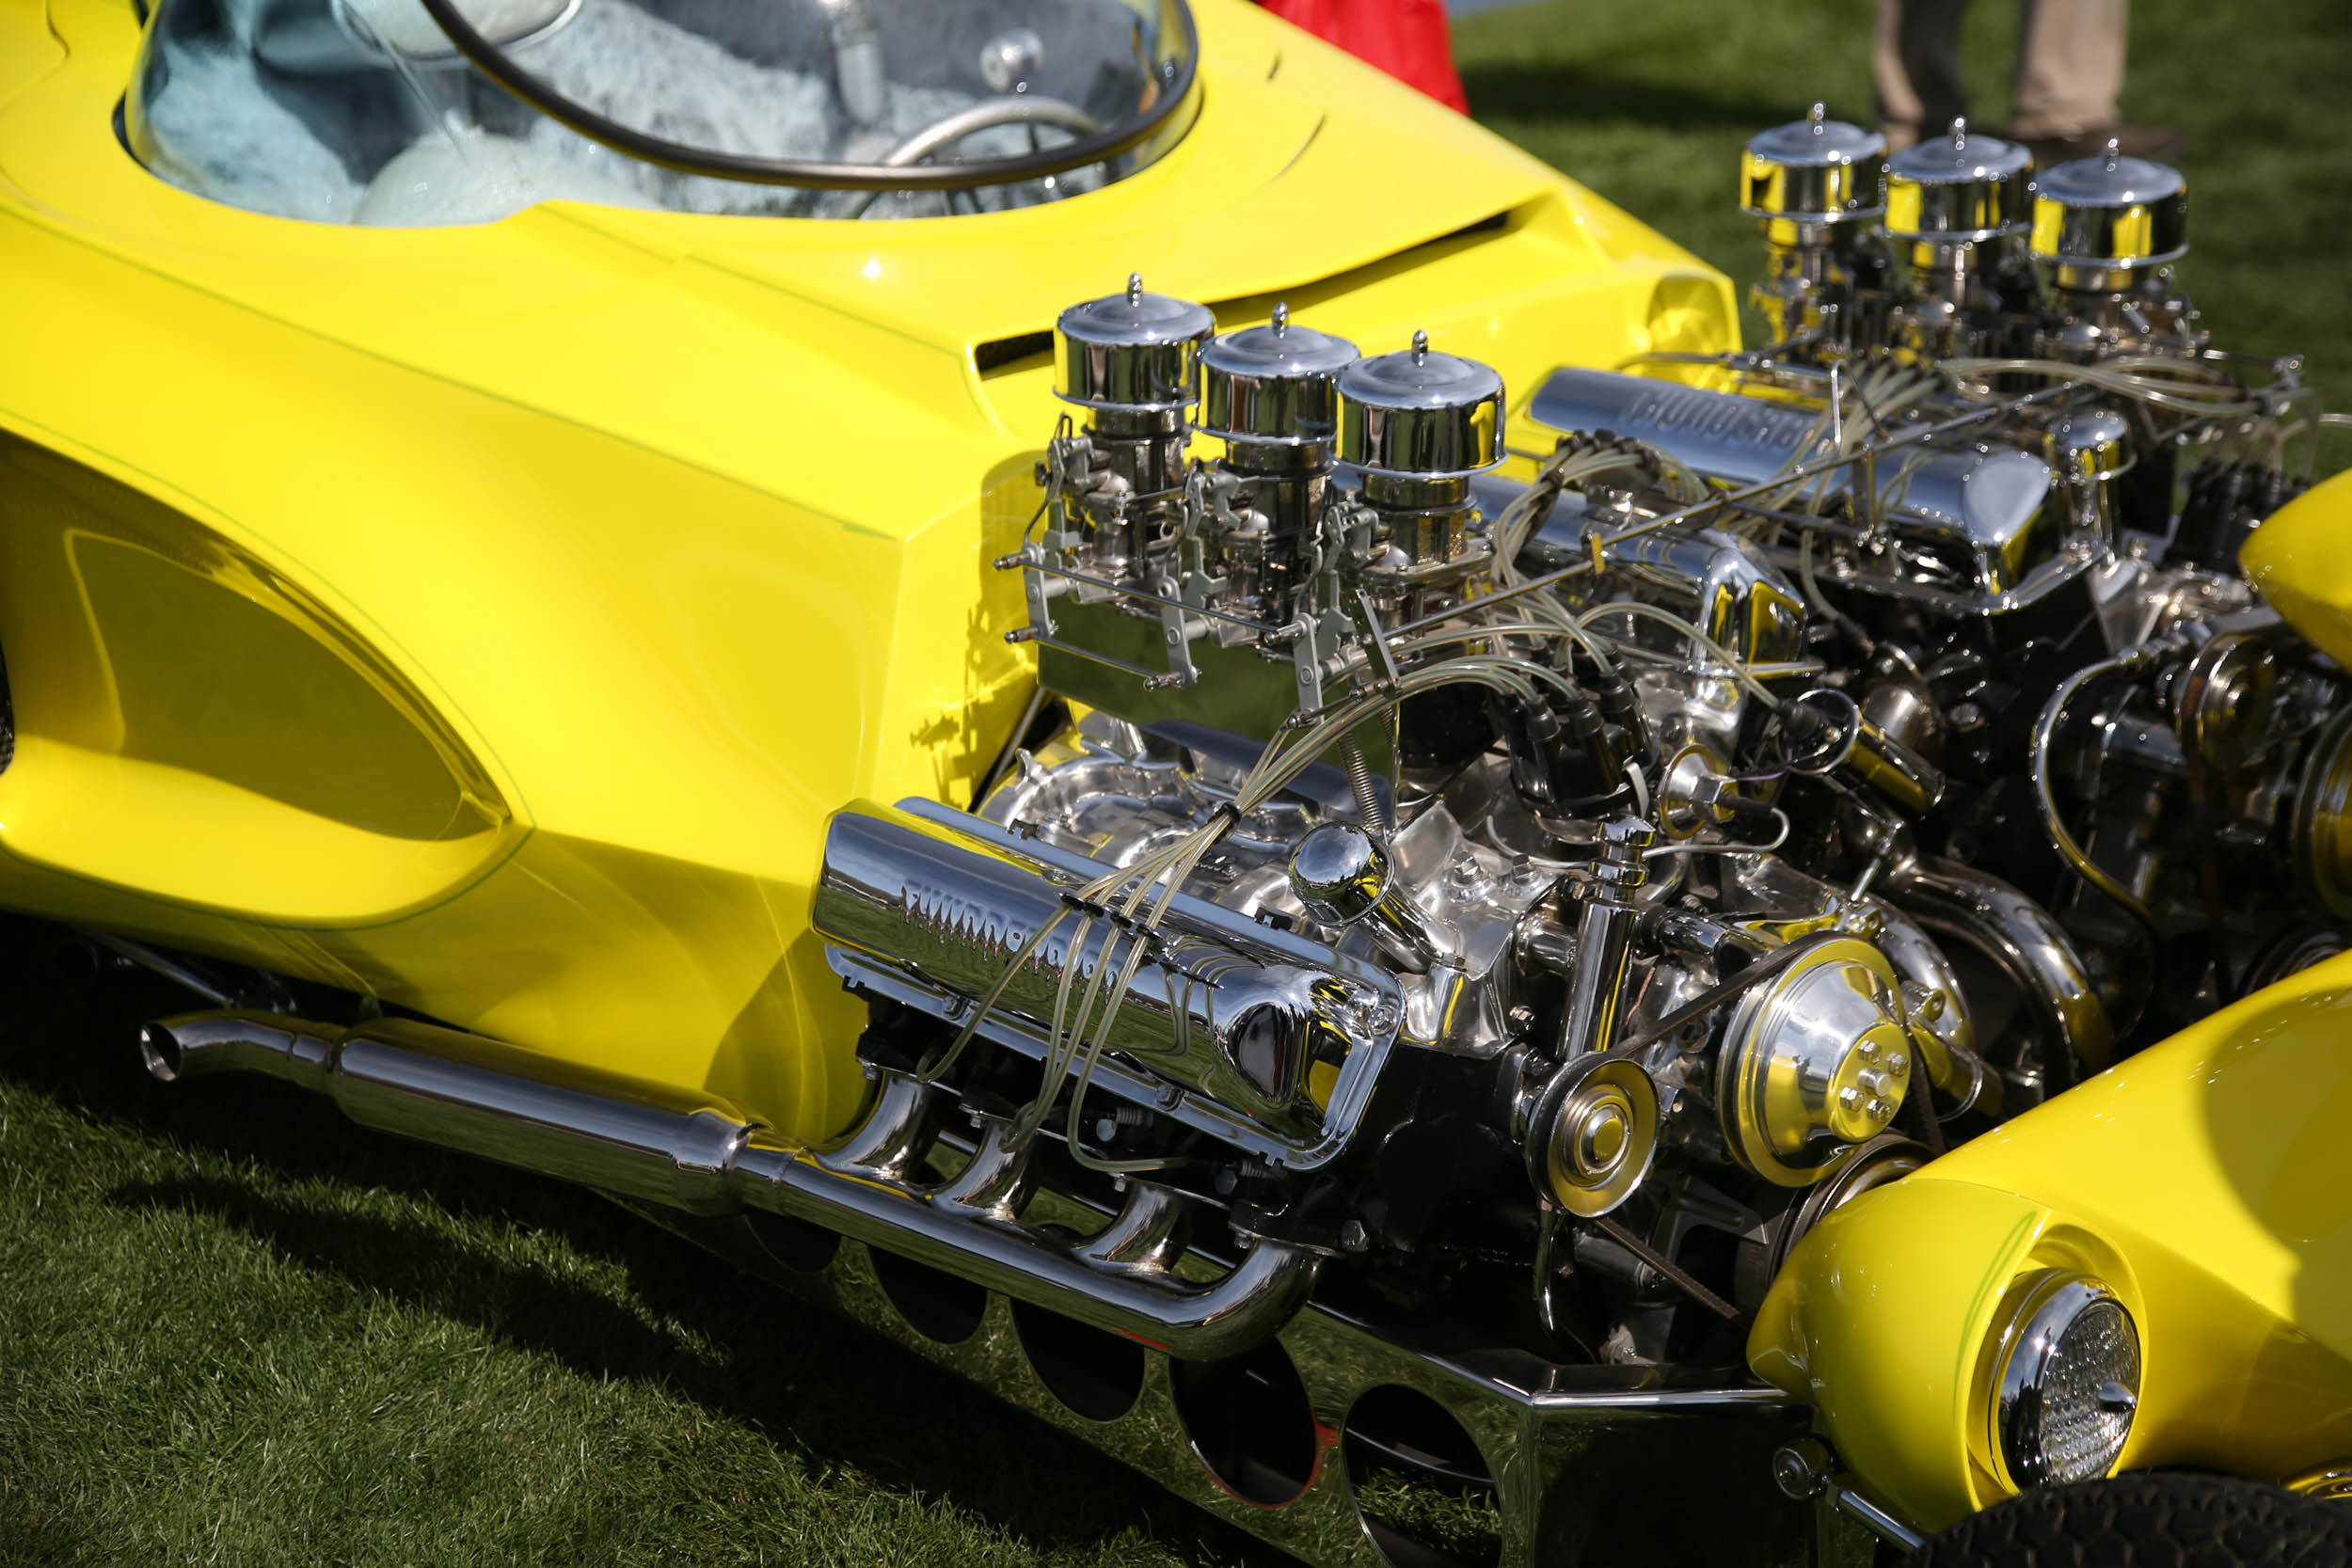 If you were expecting a 16-cylinder Bugatti, think again. These twin Ford FE engines power a replica of Ed Roth's Mysterion.